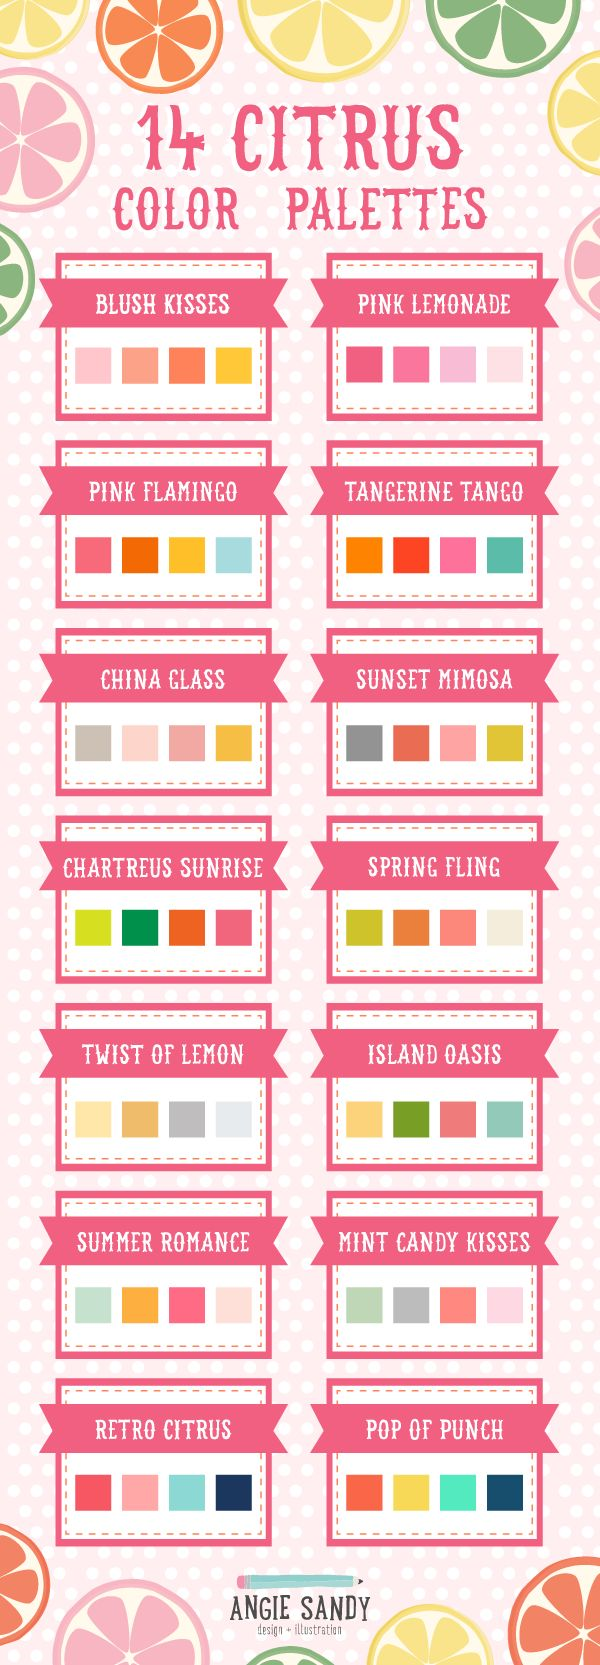 14 Citrus Color Palettes by Angie Sandy #colorpalettes #summercolor / サマーカラー カラーパレット